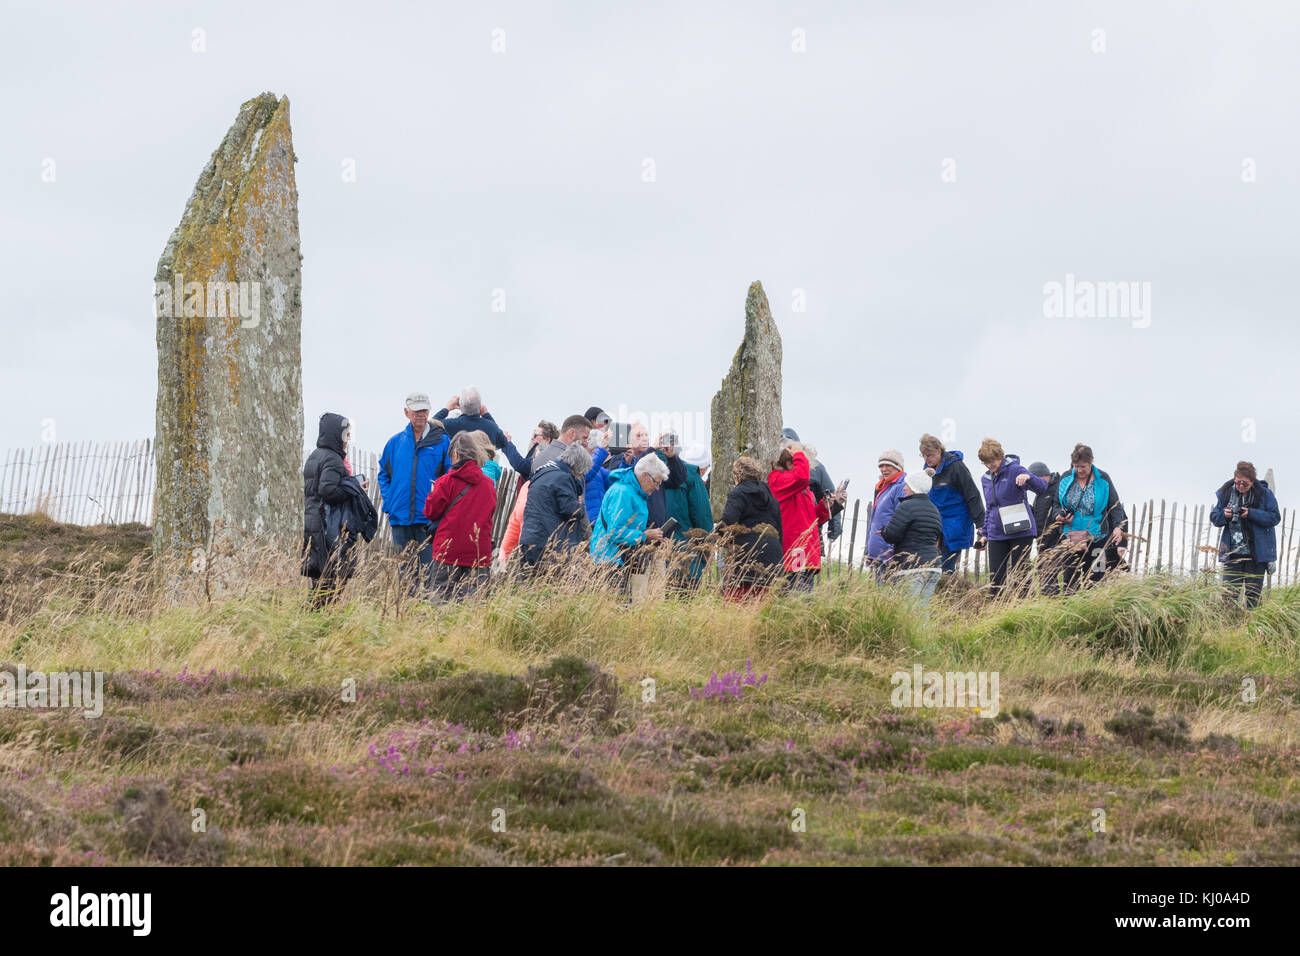 A coach party at the Ring of Brodgar, Orkney Mainland, Scotland, UK - Stock Image